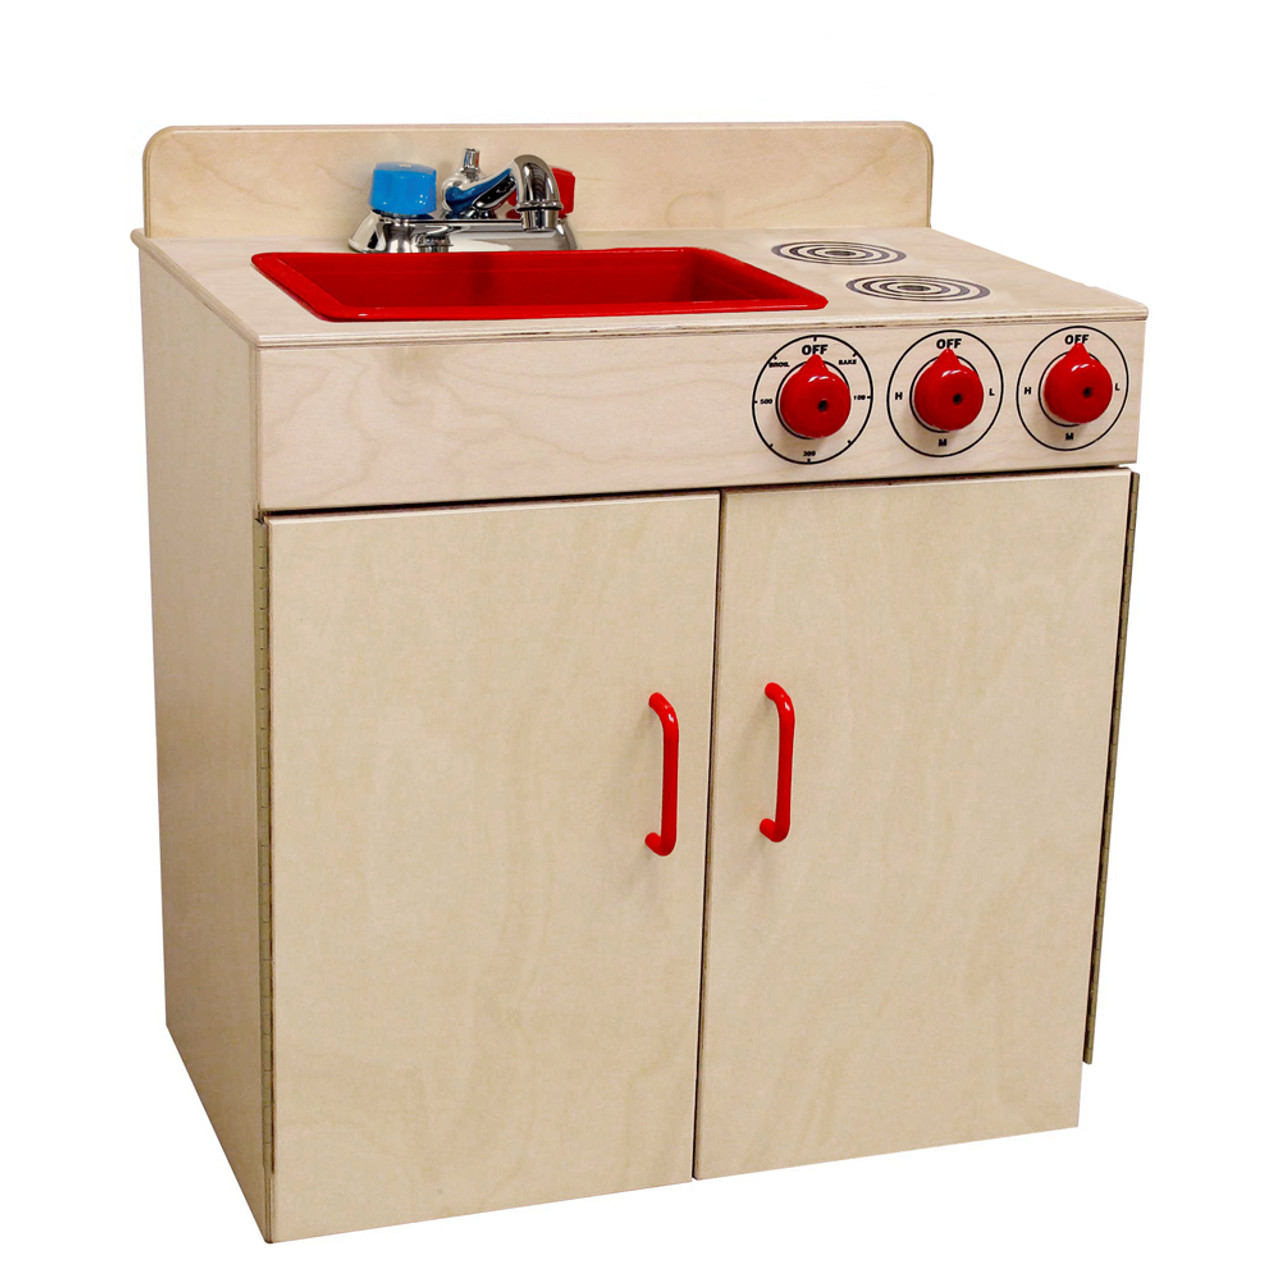 Wood Designs Kids Combination Play Sink And Play Stove [10500-WDD]